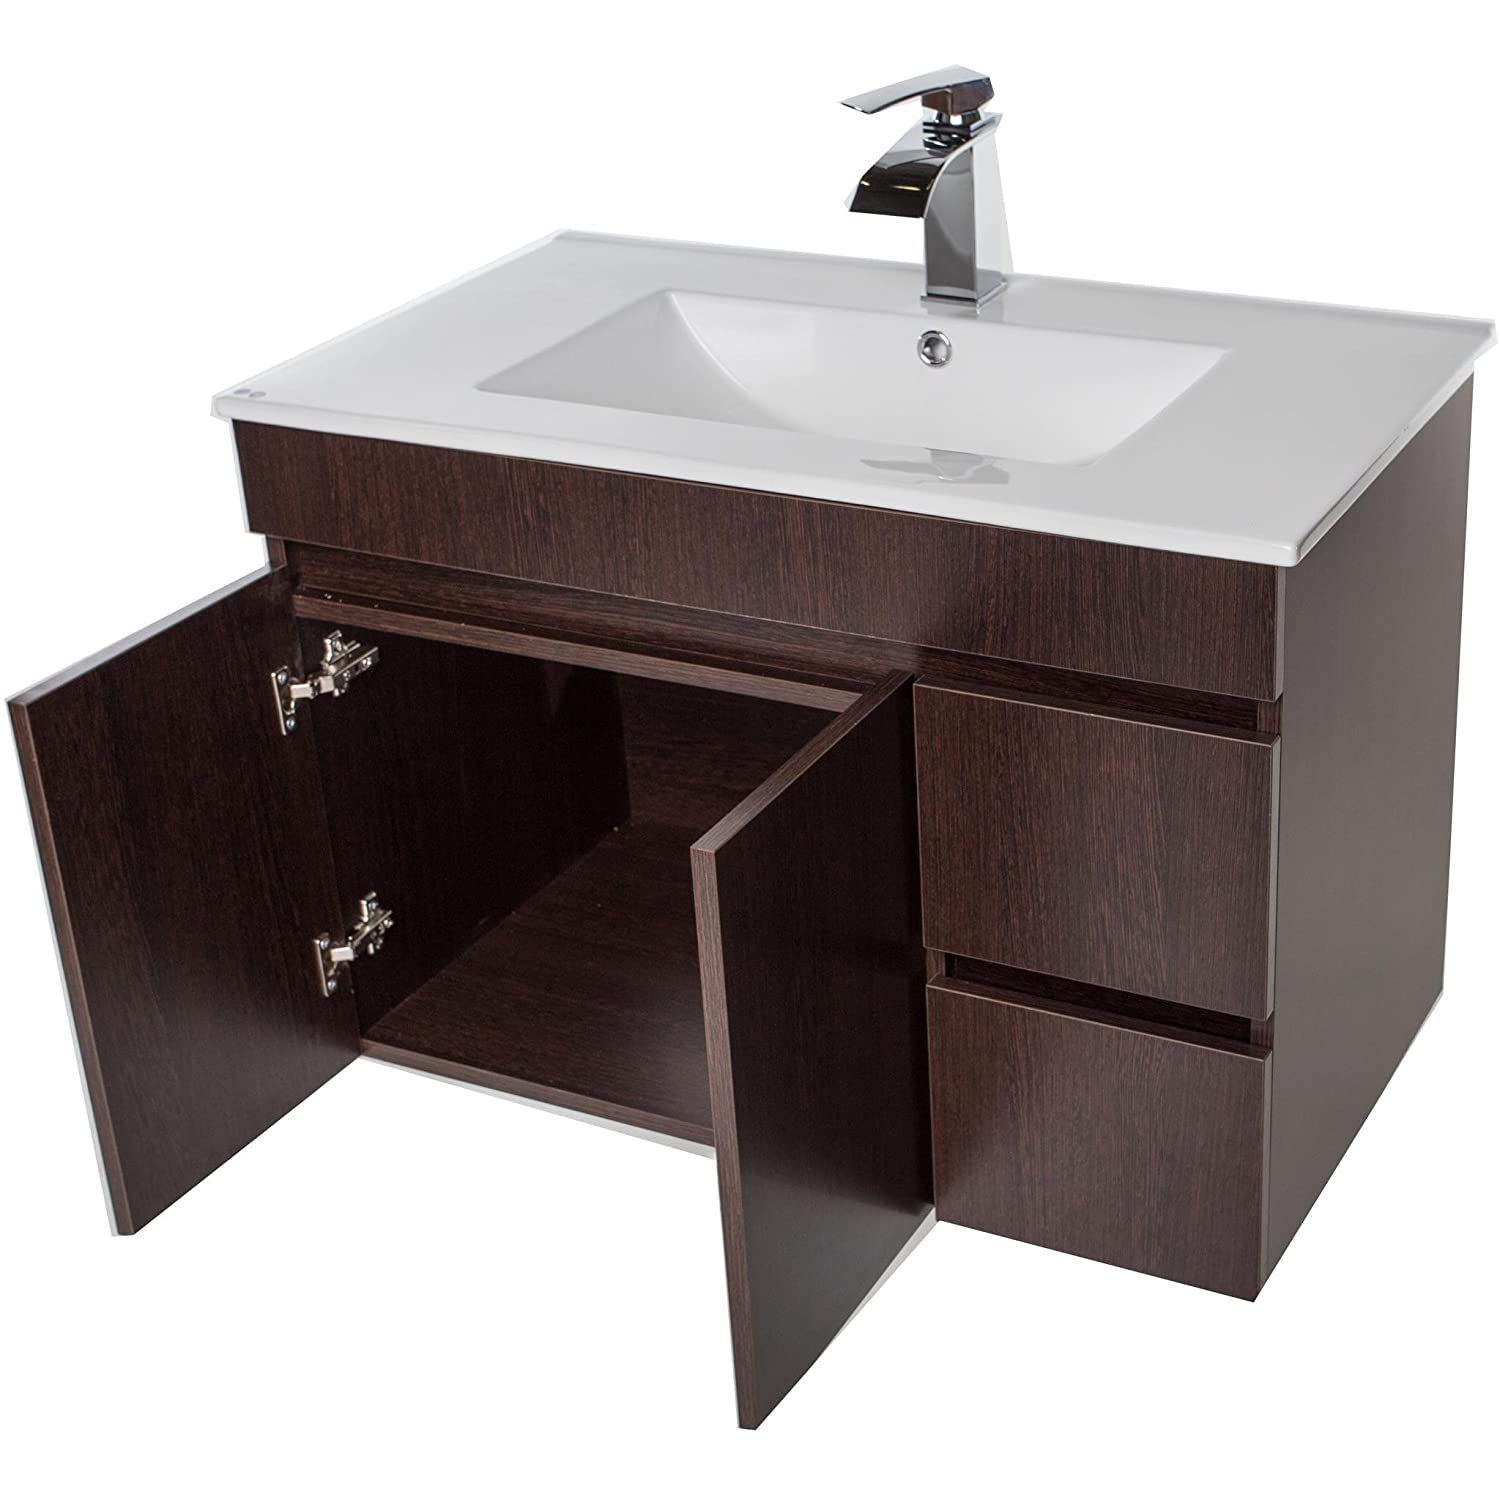 Strato Wall Mounted Bathroom Vanity Cabinet Set Bath Furniture With